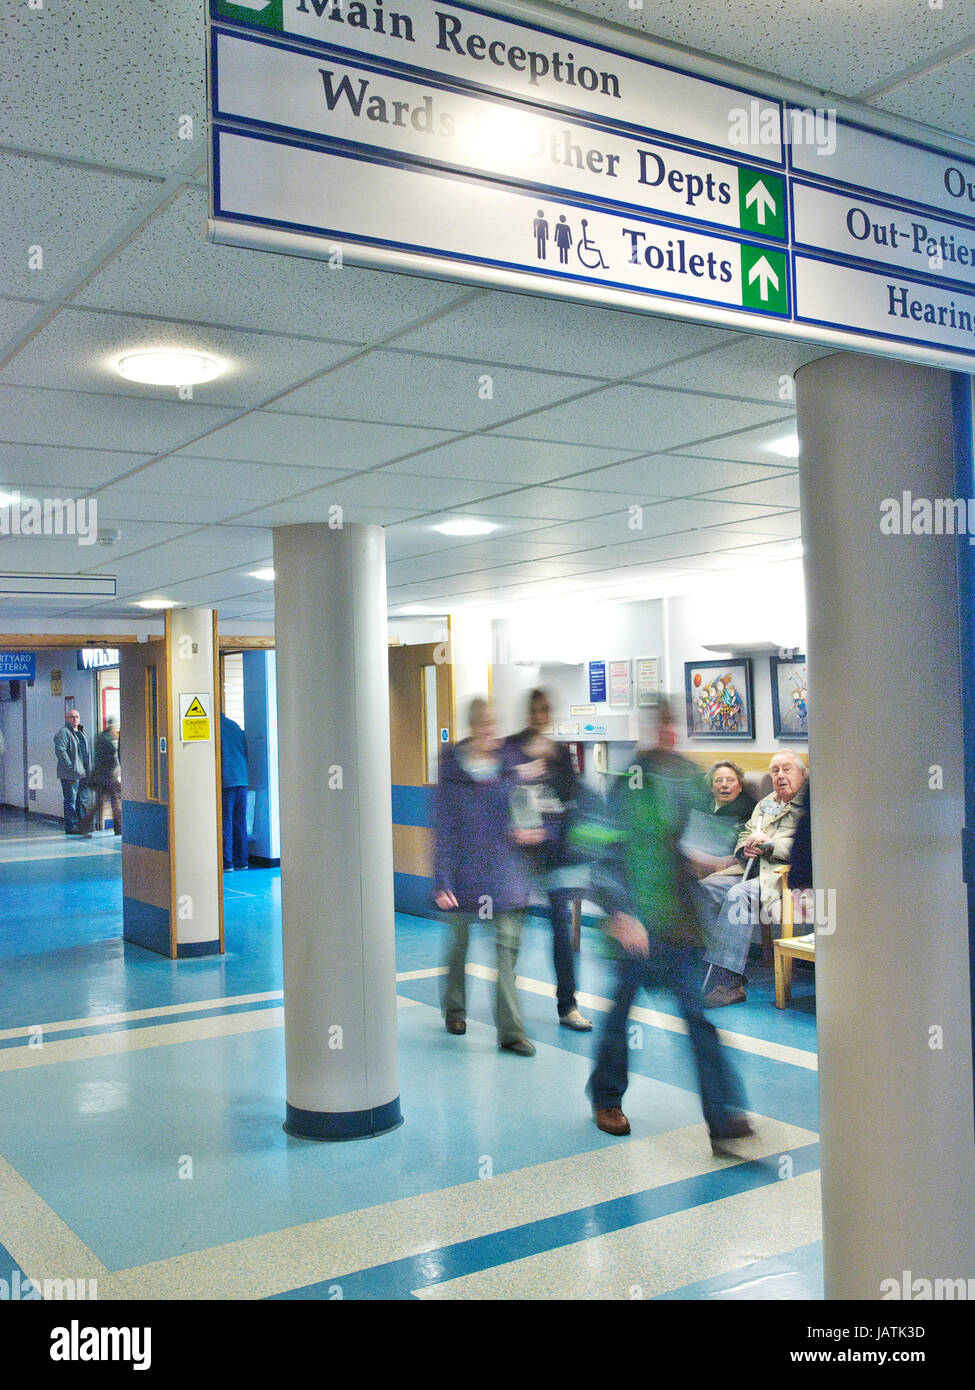 Entrance to a UK NHS hospital with patient and staff walking through, blurred through movement. - Stock Image